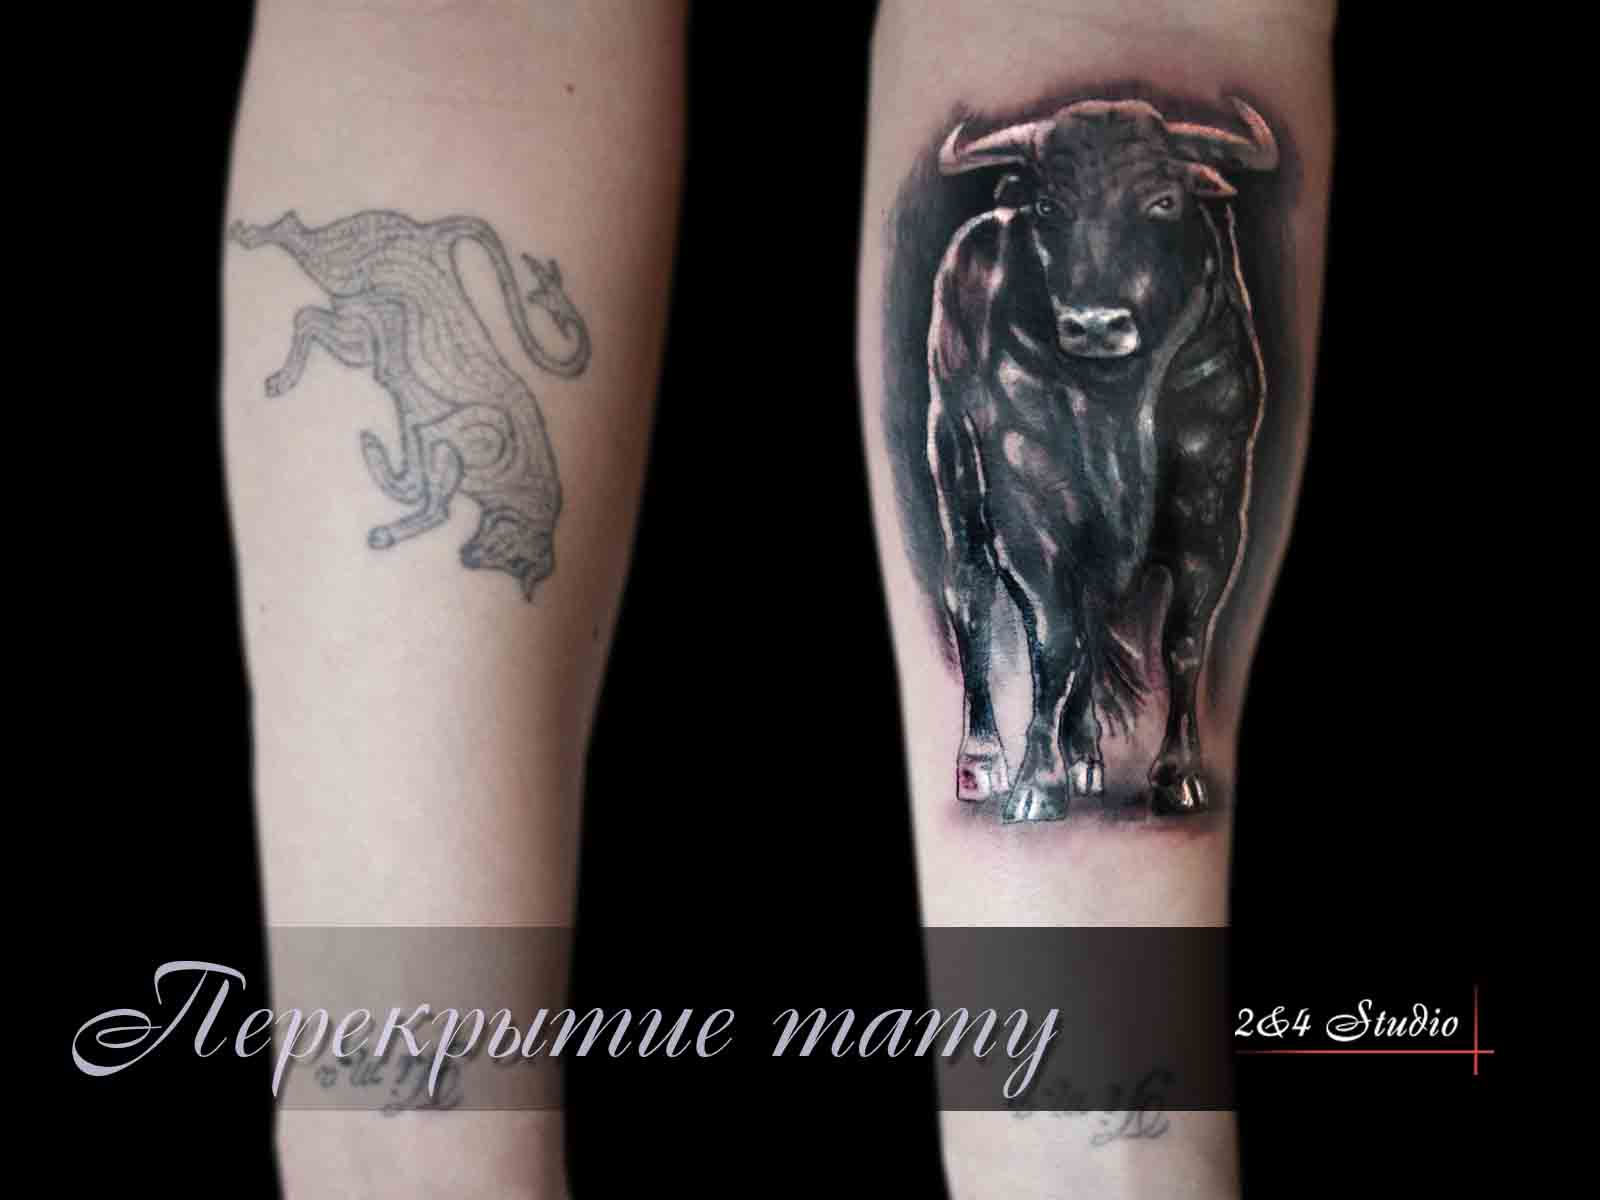 tattoo-taurus-cover-up.jpg